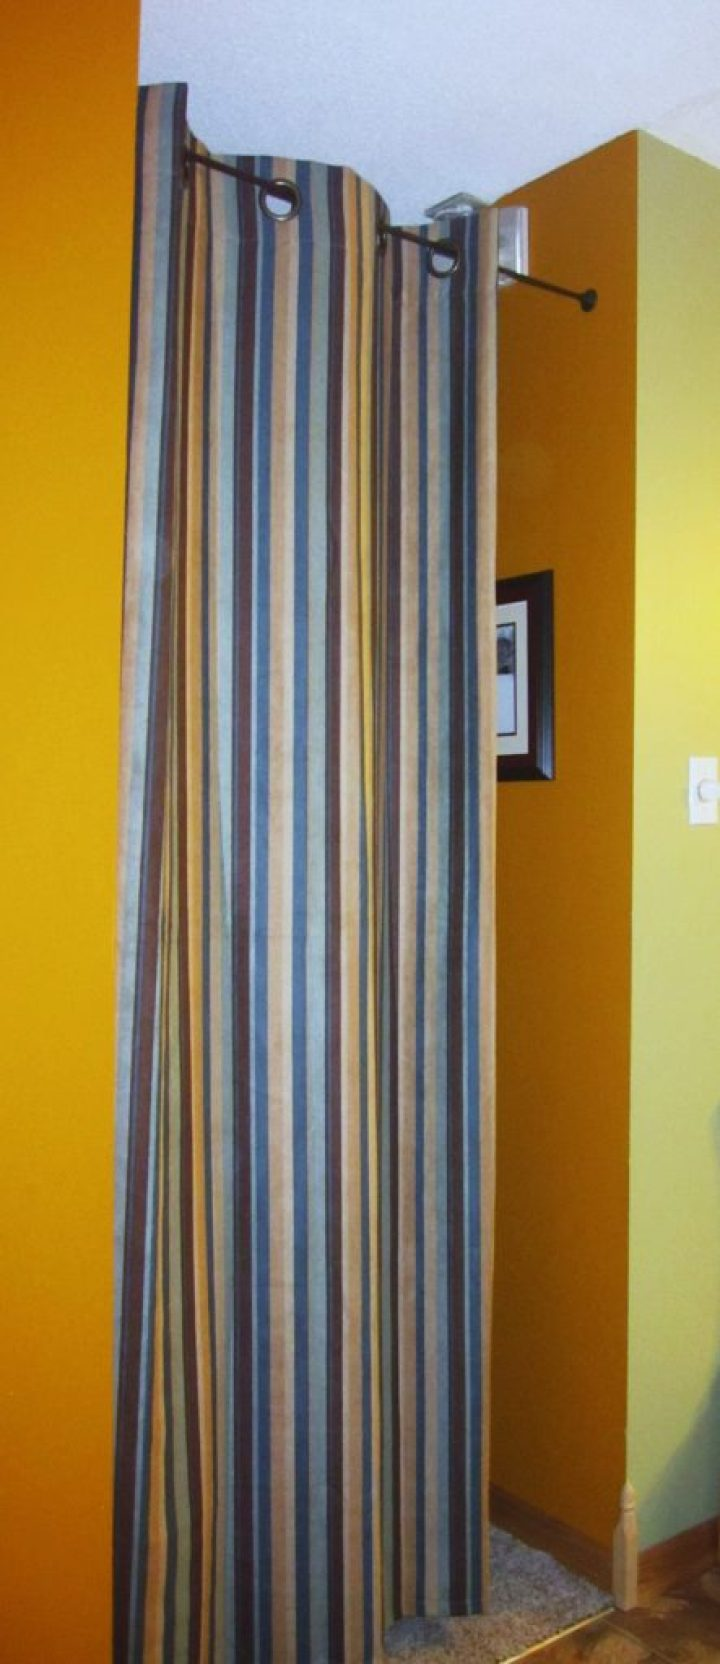 Hallway Dividers Try Something New  Room Dividers  Blindstuiss ®  The Blog